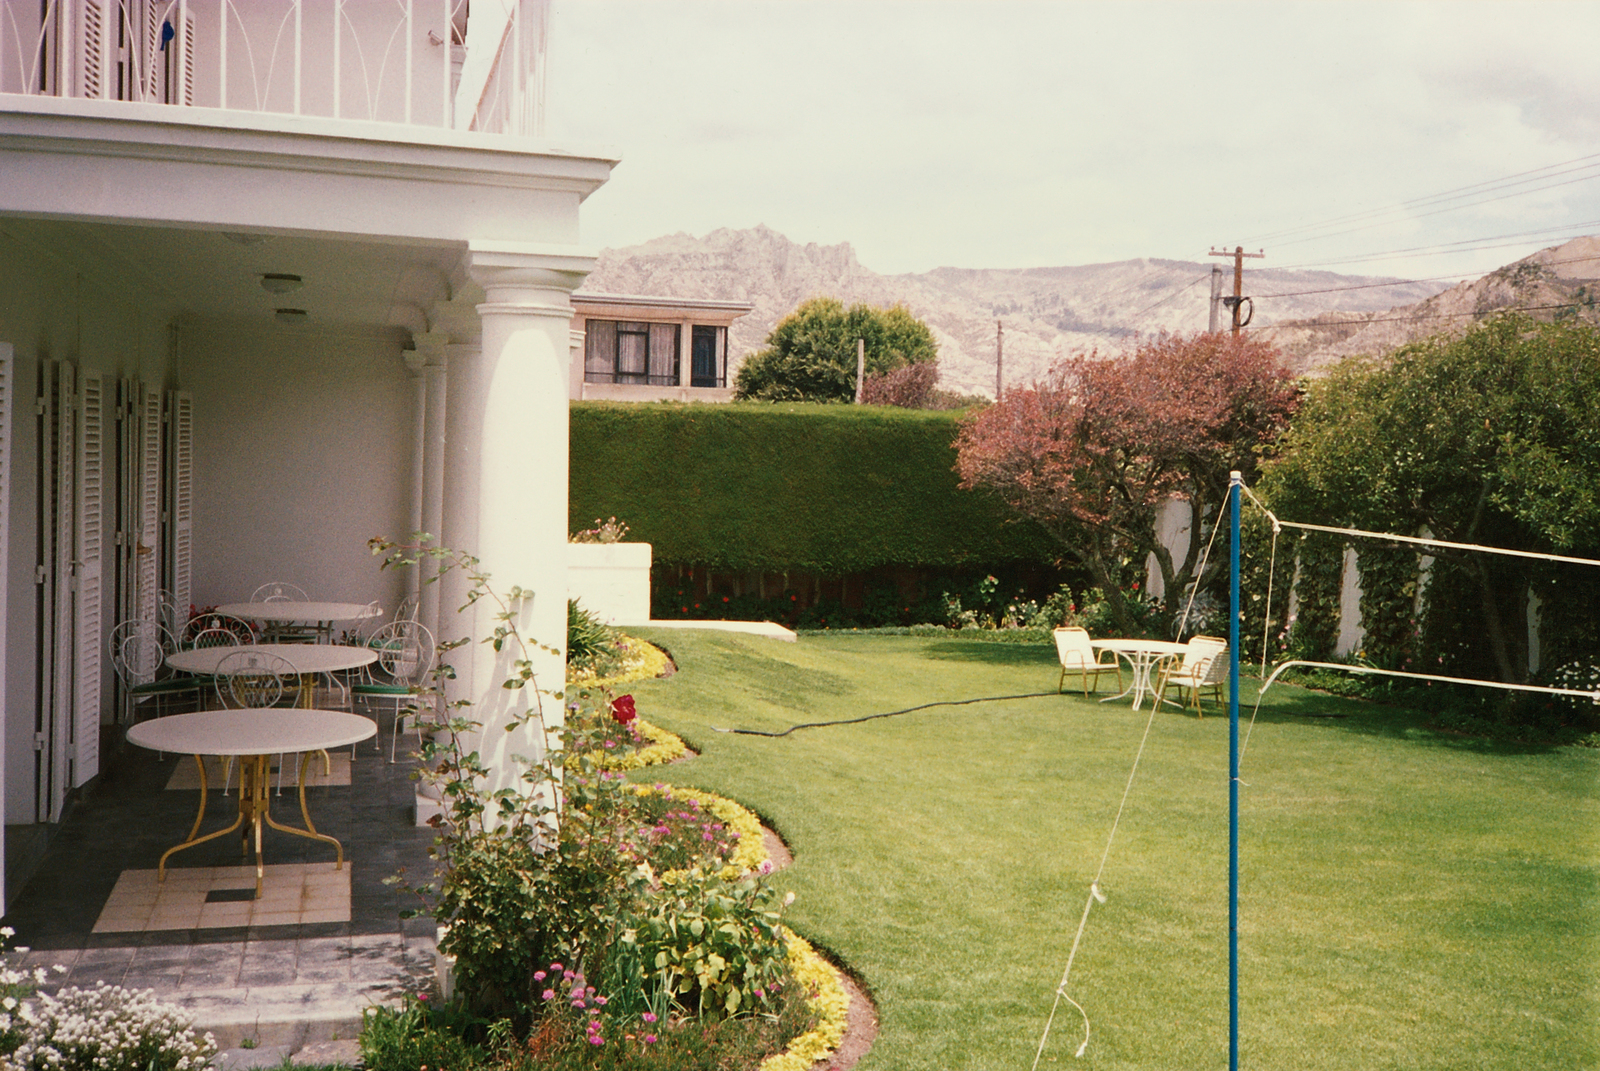 La Paz - Department of Defense Agency Head Residence - 1992